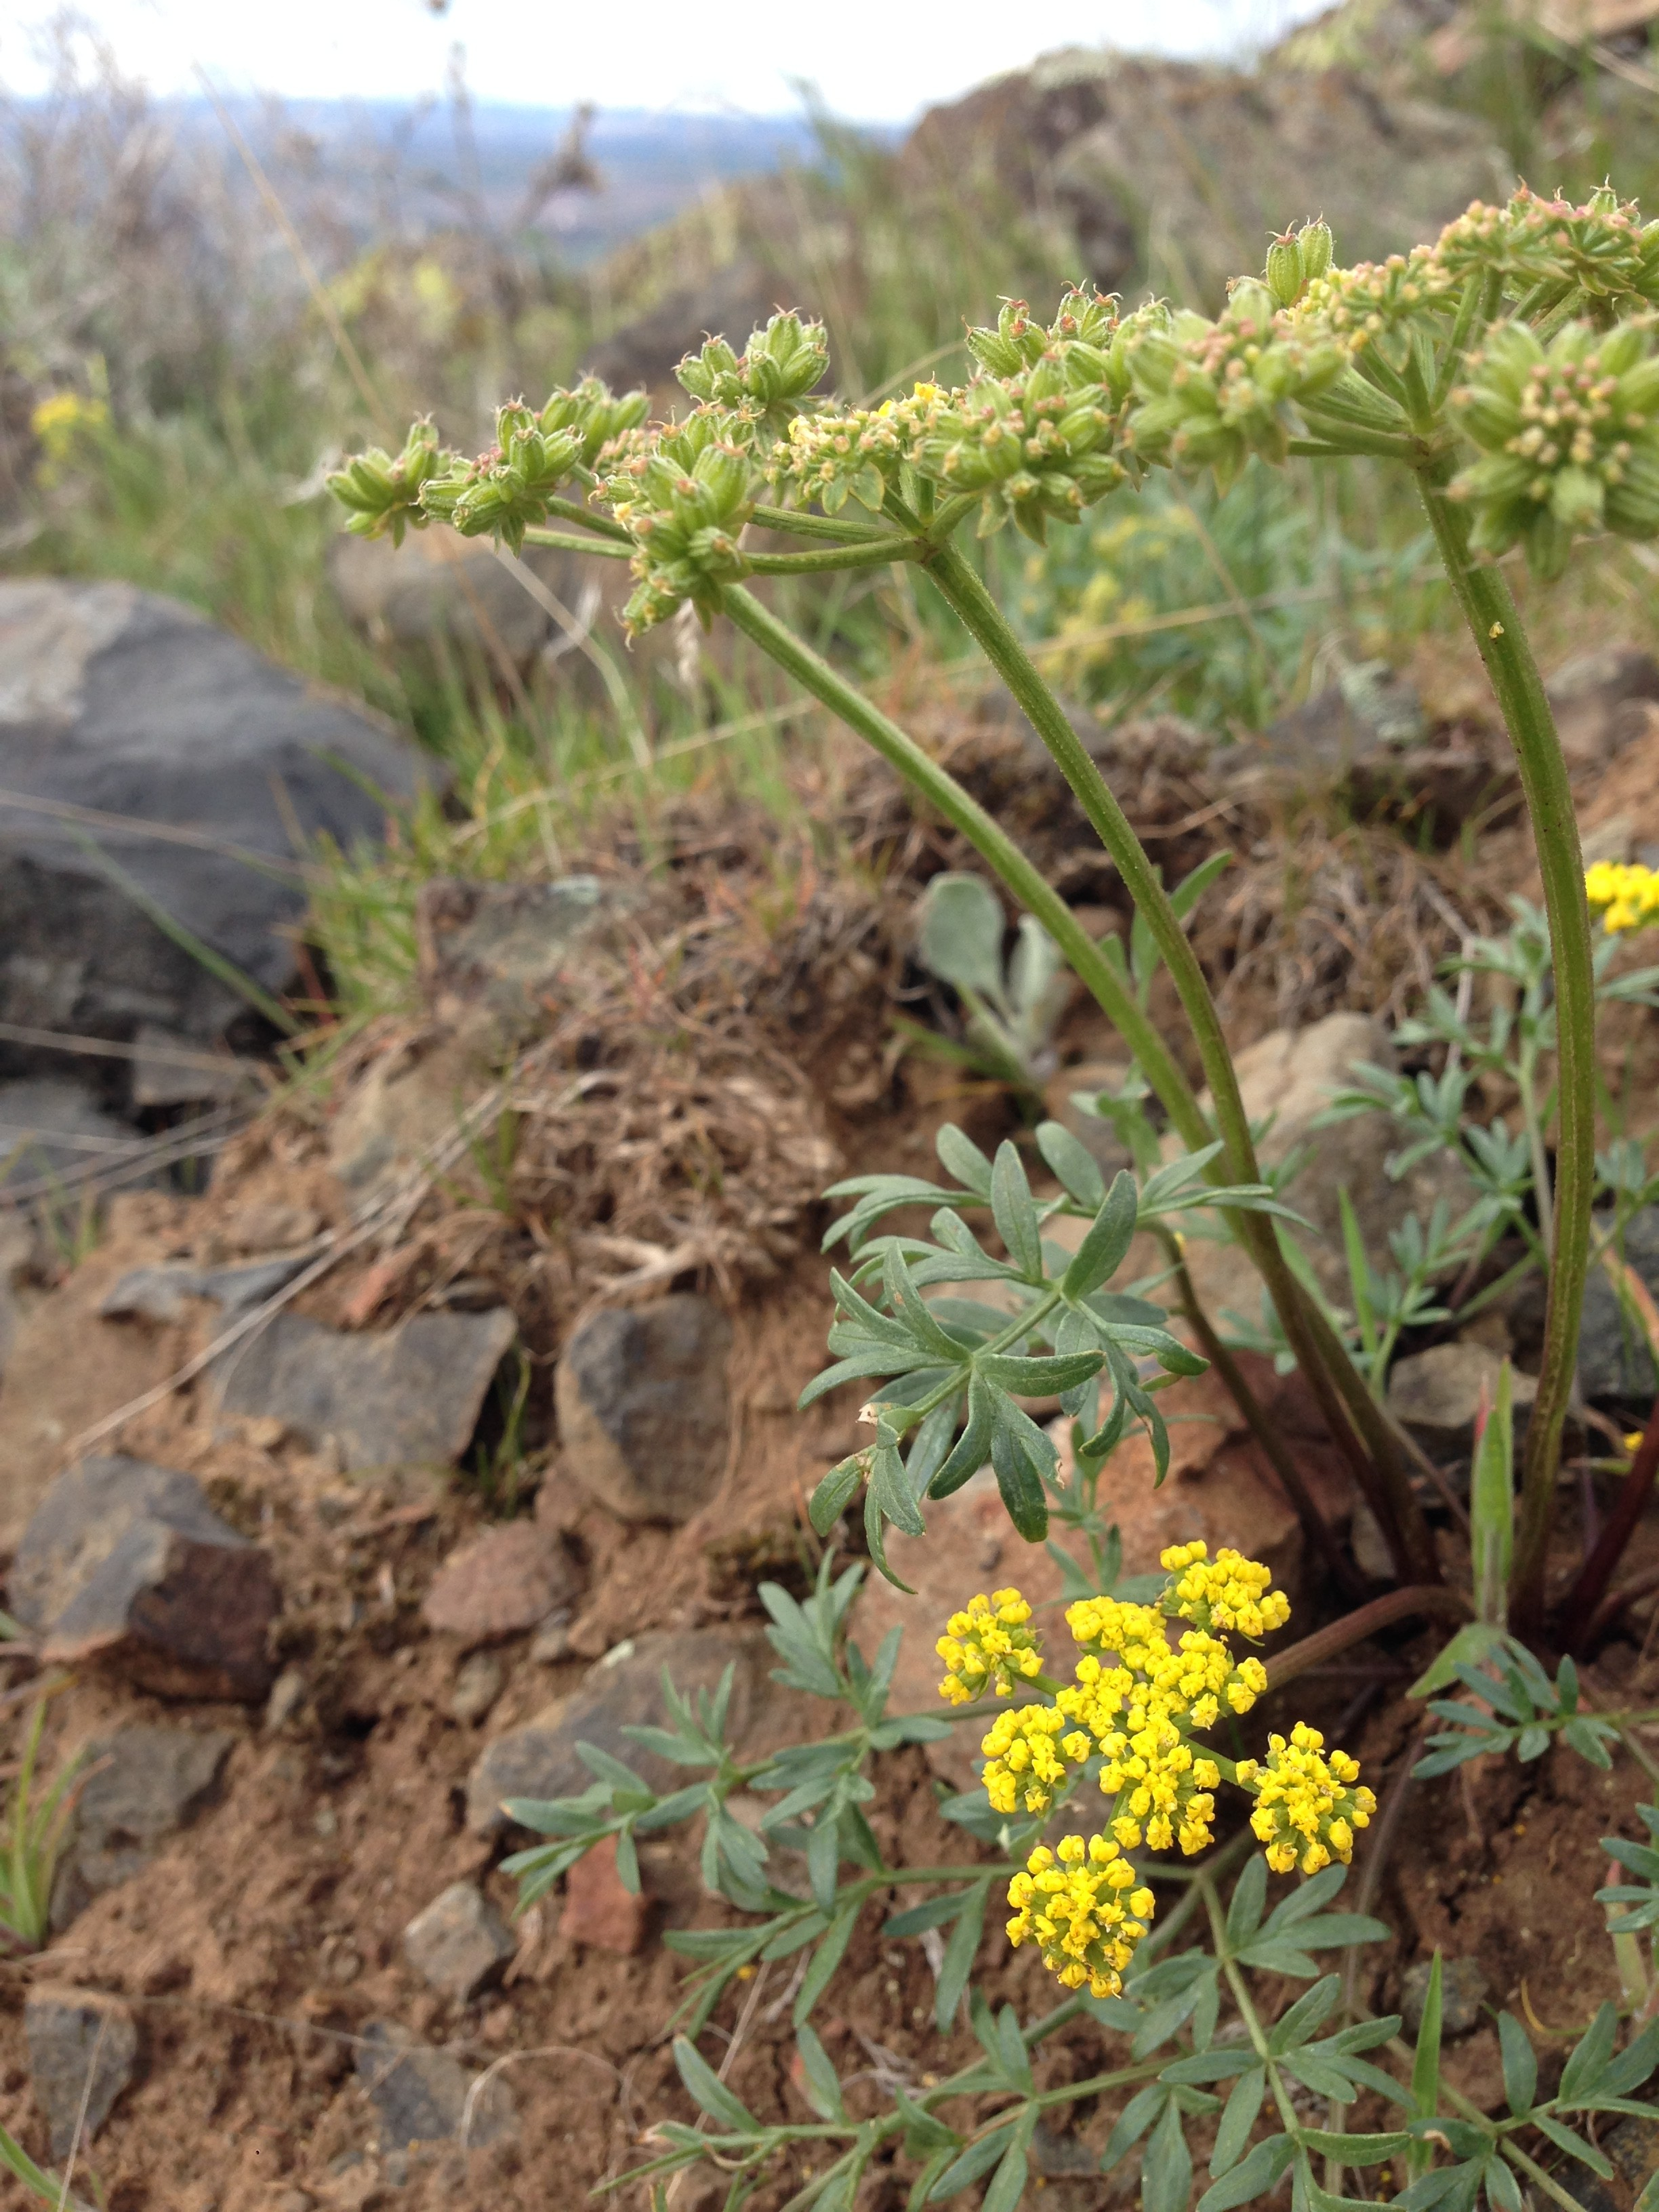 360_wildflowerapp_cous-root-desert-parsley.jpg